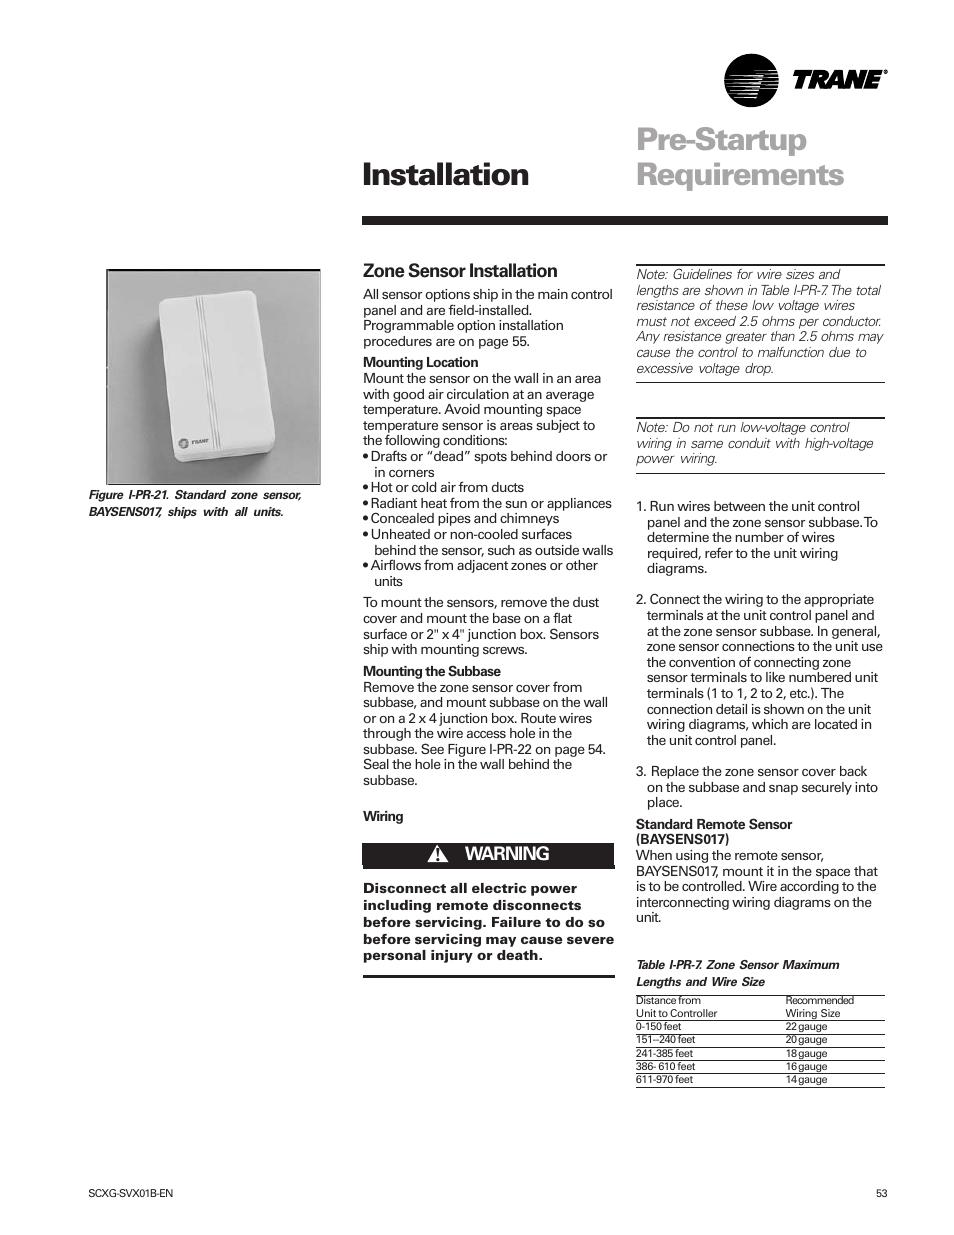 Trane Intellipak Wiring Diagrams Solutions Commercial Pre Startup Requirements Installation Zone Sensor